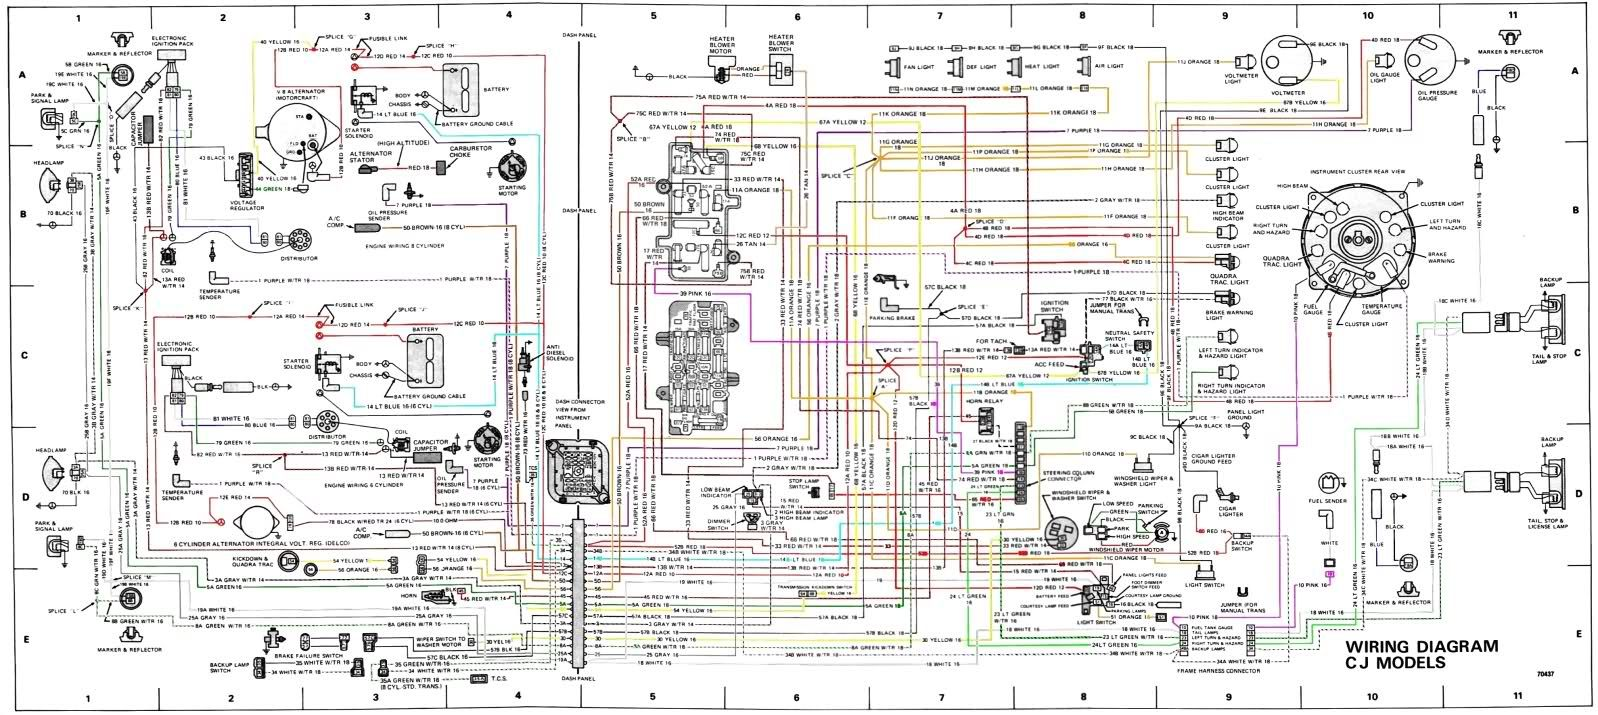 hight resolution of 85 cj5 wiring diagram wiring diagram used 85 cj5 wiring diagram